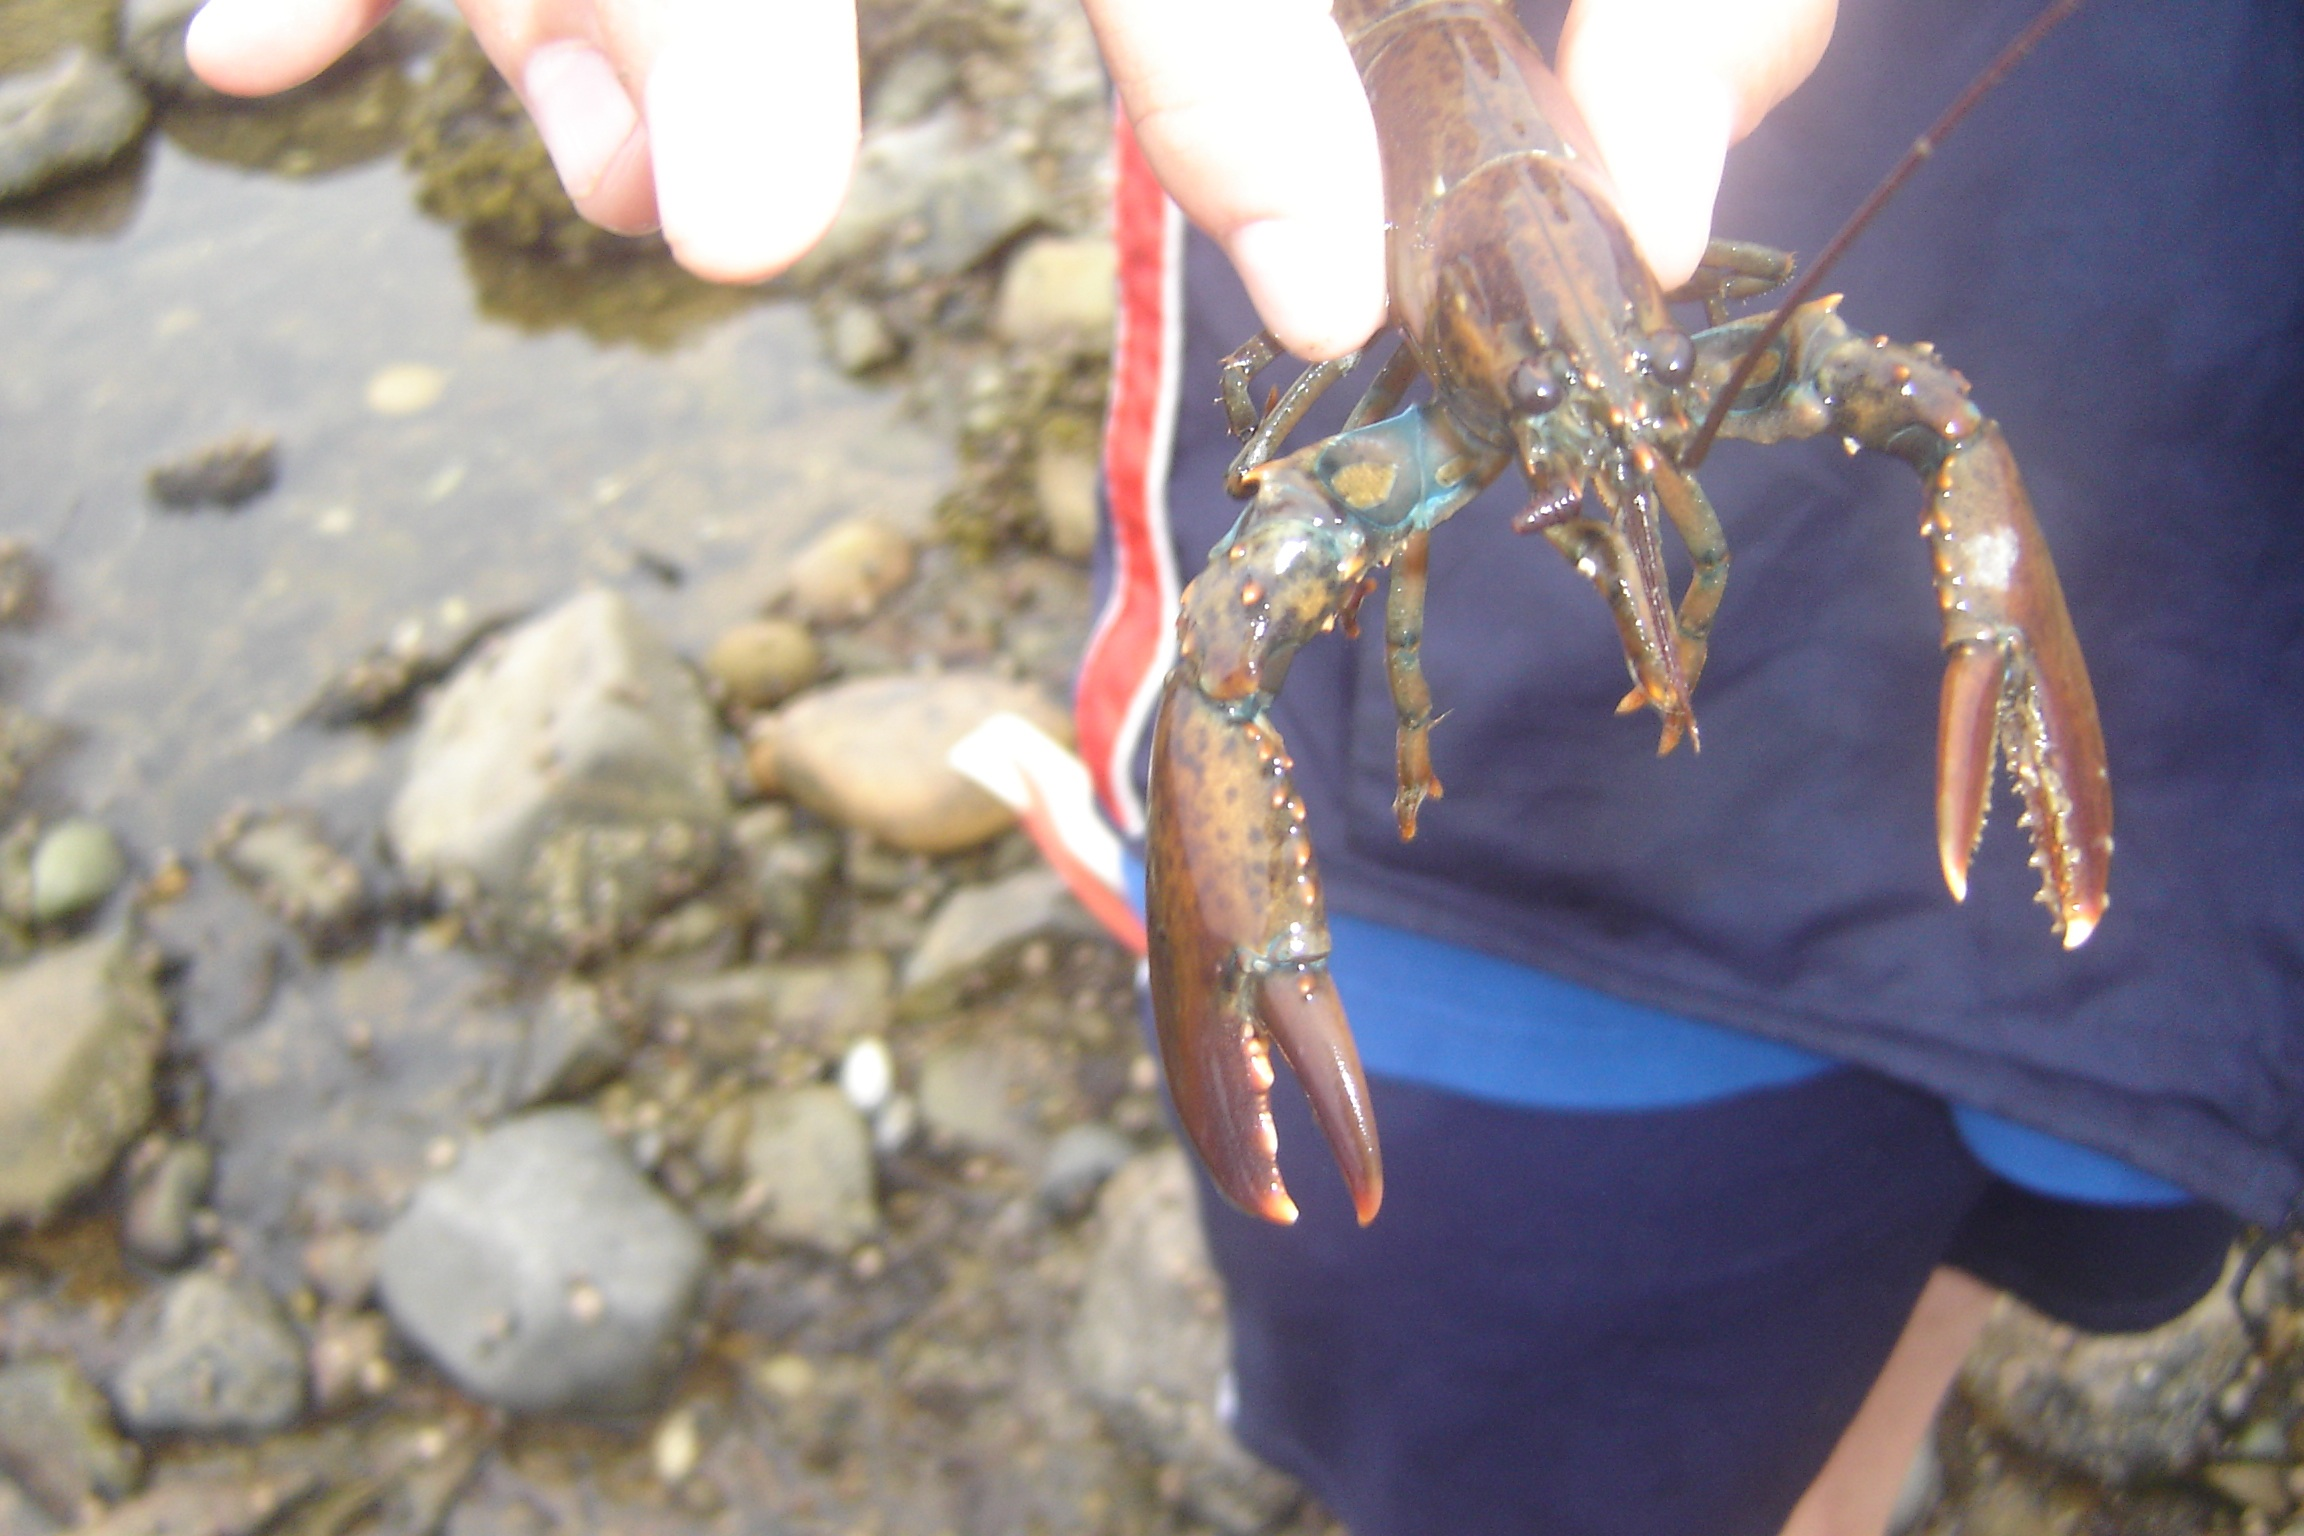 Dale and his family discovered this tiny lobster while exploring at low tide near Southwest Harbor. I've never come upon one while walking the low tide. A century ago the Maine shore was so littered with lobsters that they were served to jail prisoners virtually every night.